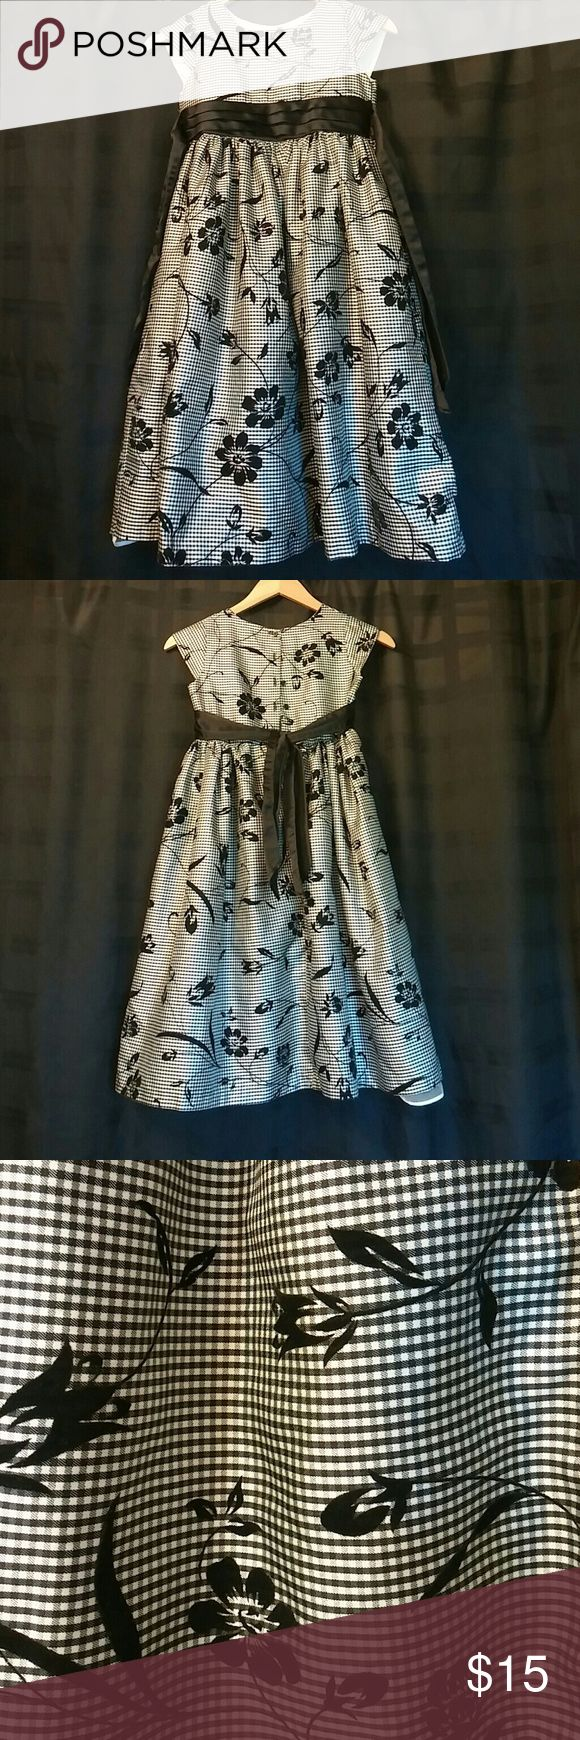 Girl's Fancy Dress by George Darling dress for those special holiday occasions, or school events. The black floral design is velvet, which gives the dress a very dark rich look. My daughter has outgrown it and cried, when I pulled it from her closet. The built in slip and tully gives the girl the feel of a princess in an evening gown. George Dresses